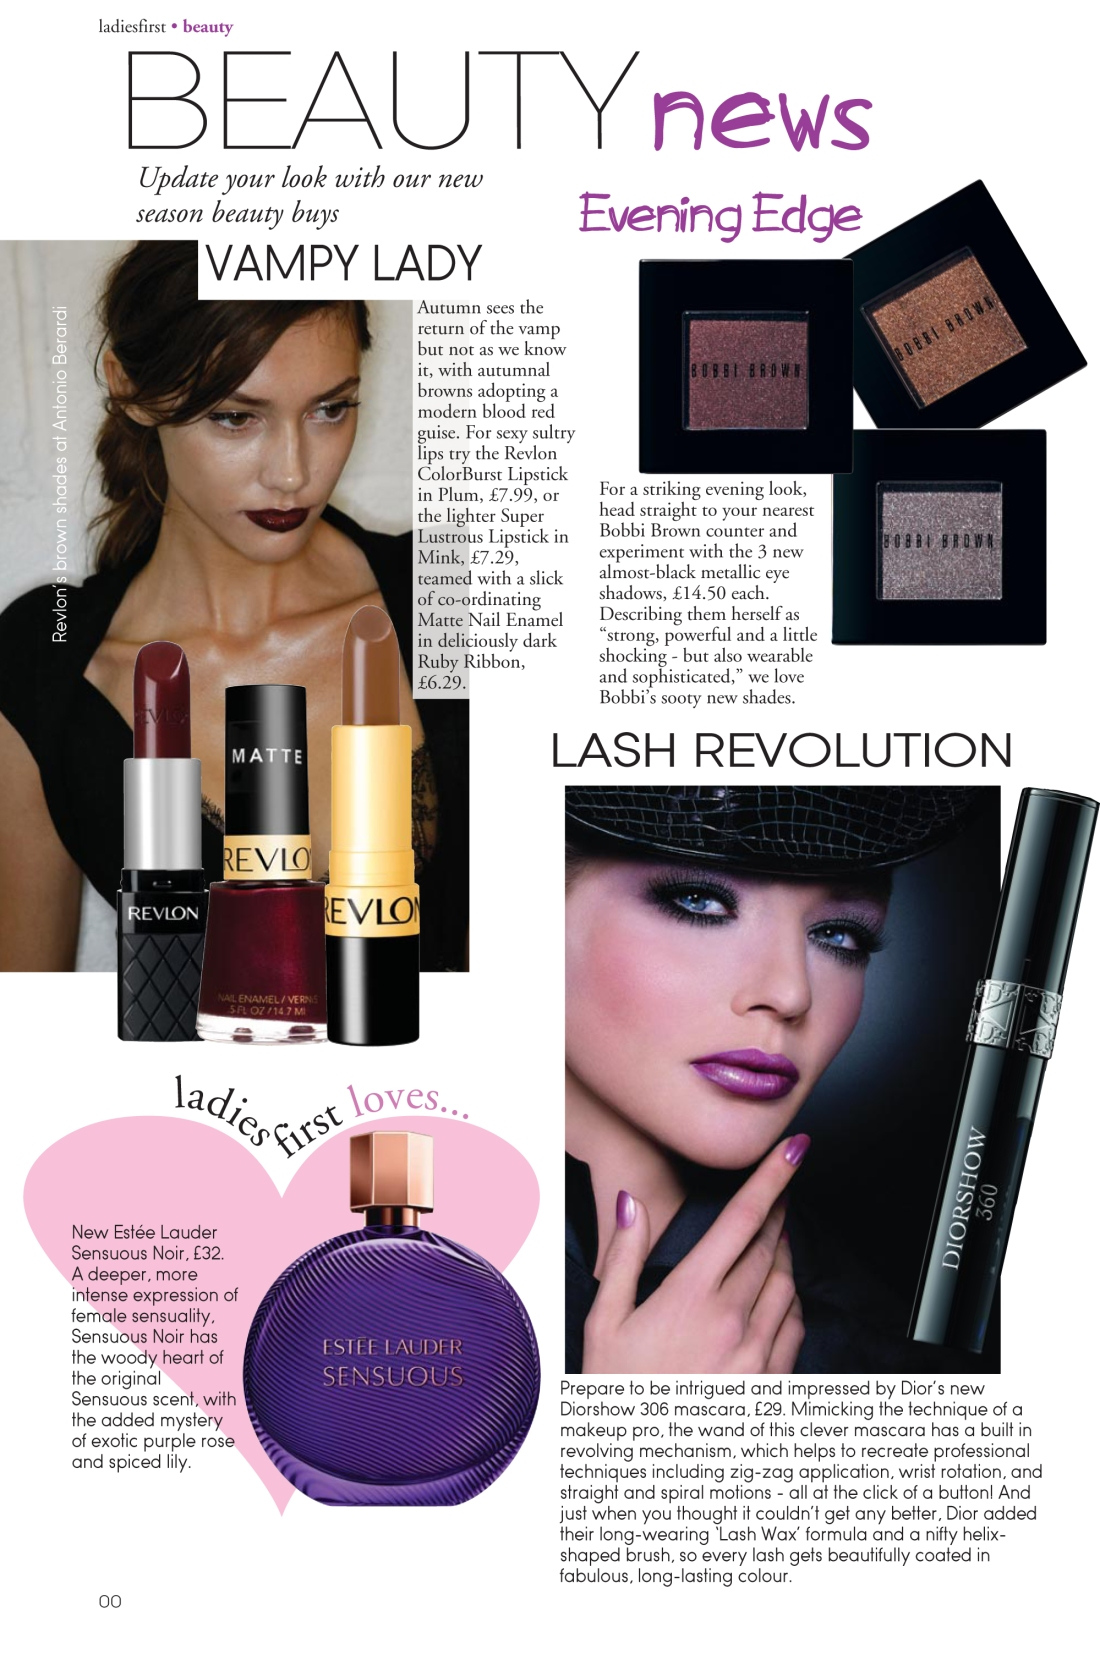 Beauty news spread - Ladies First Autumn 2010 issue- page 1- Amy Lewis